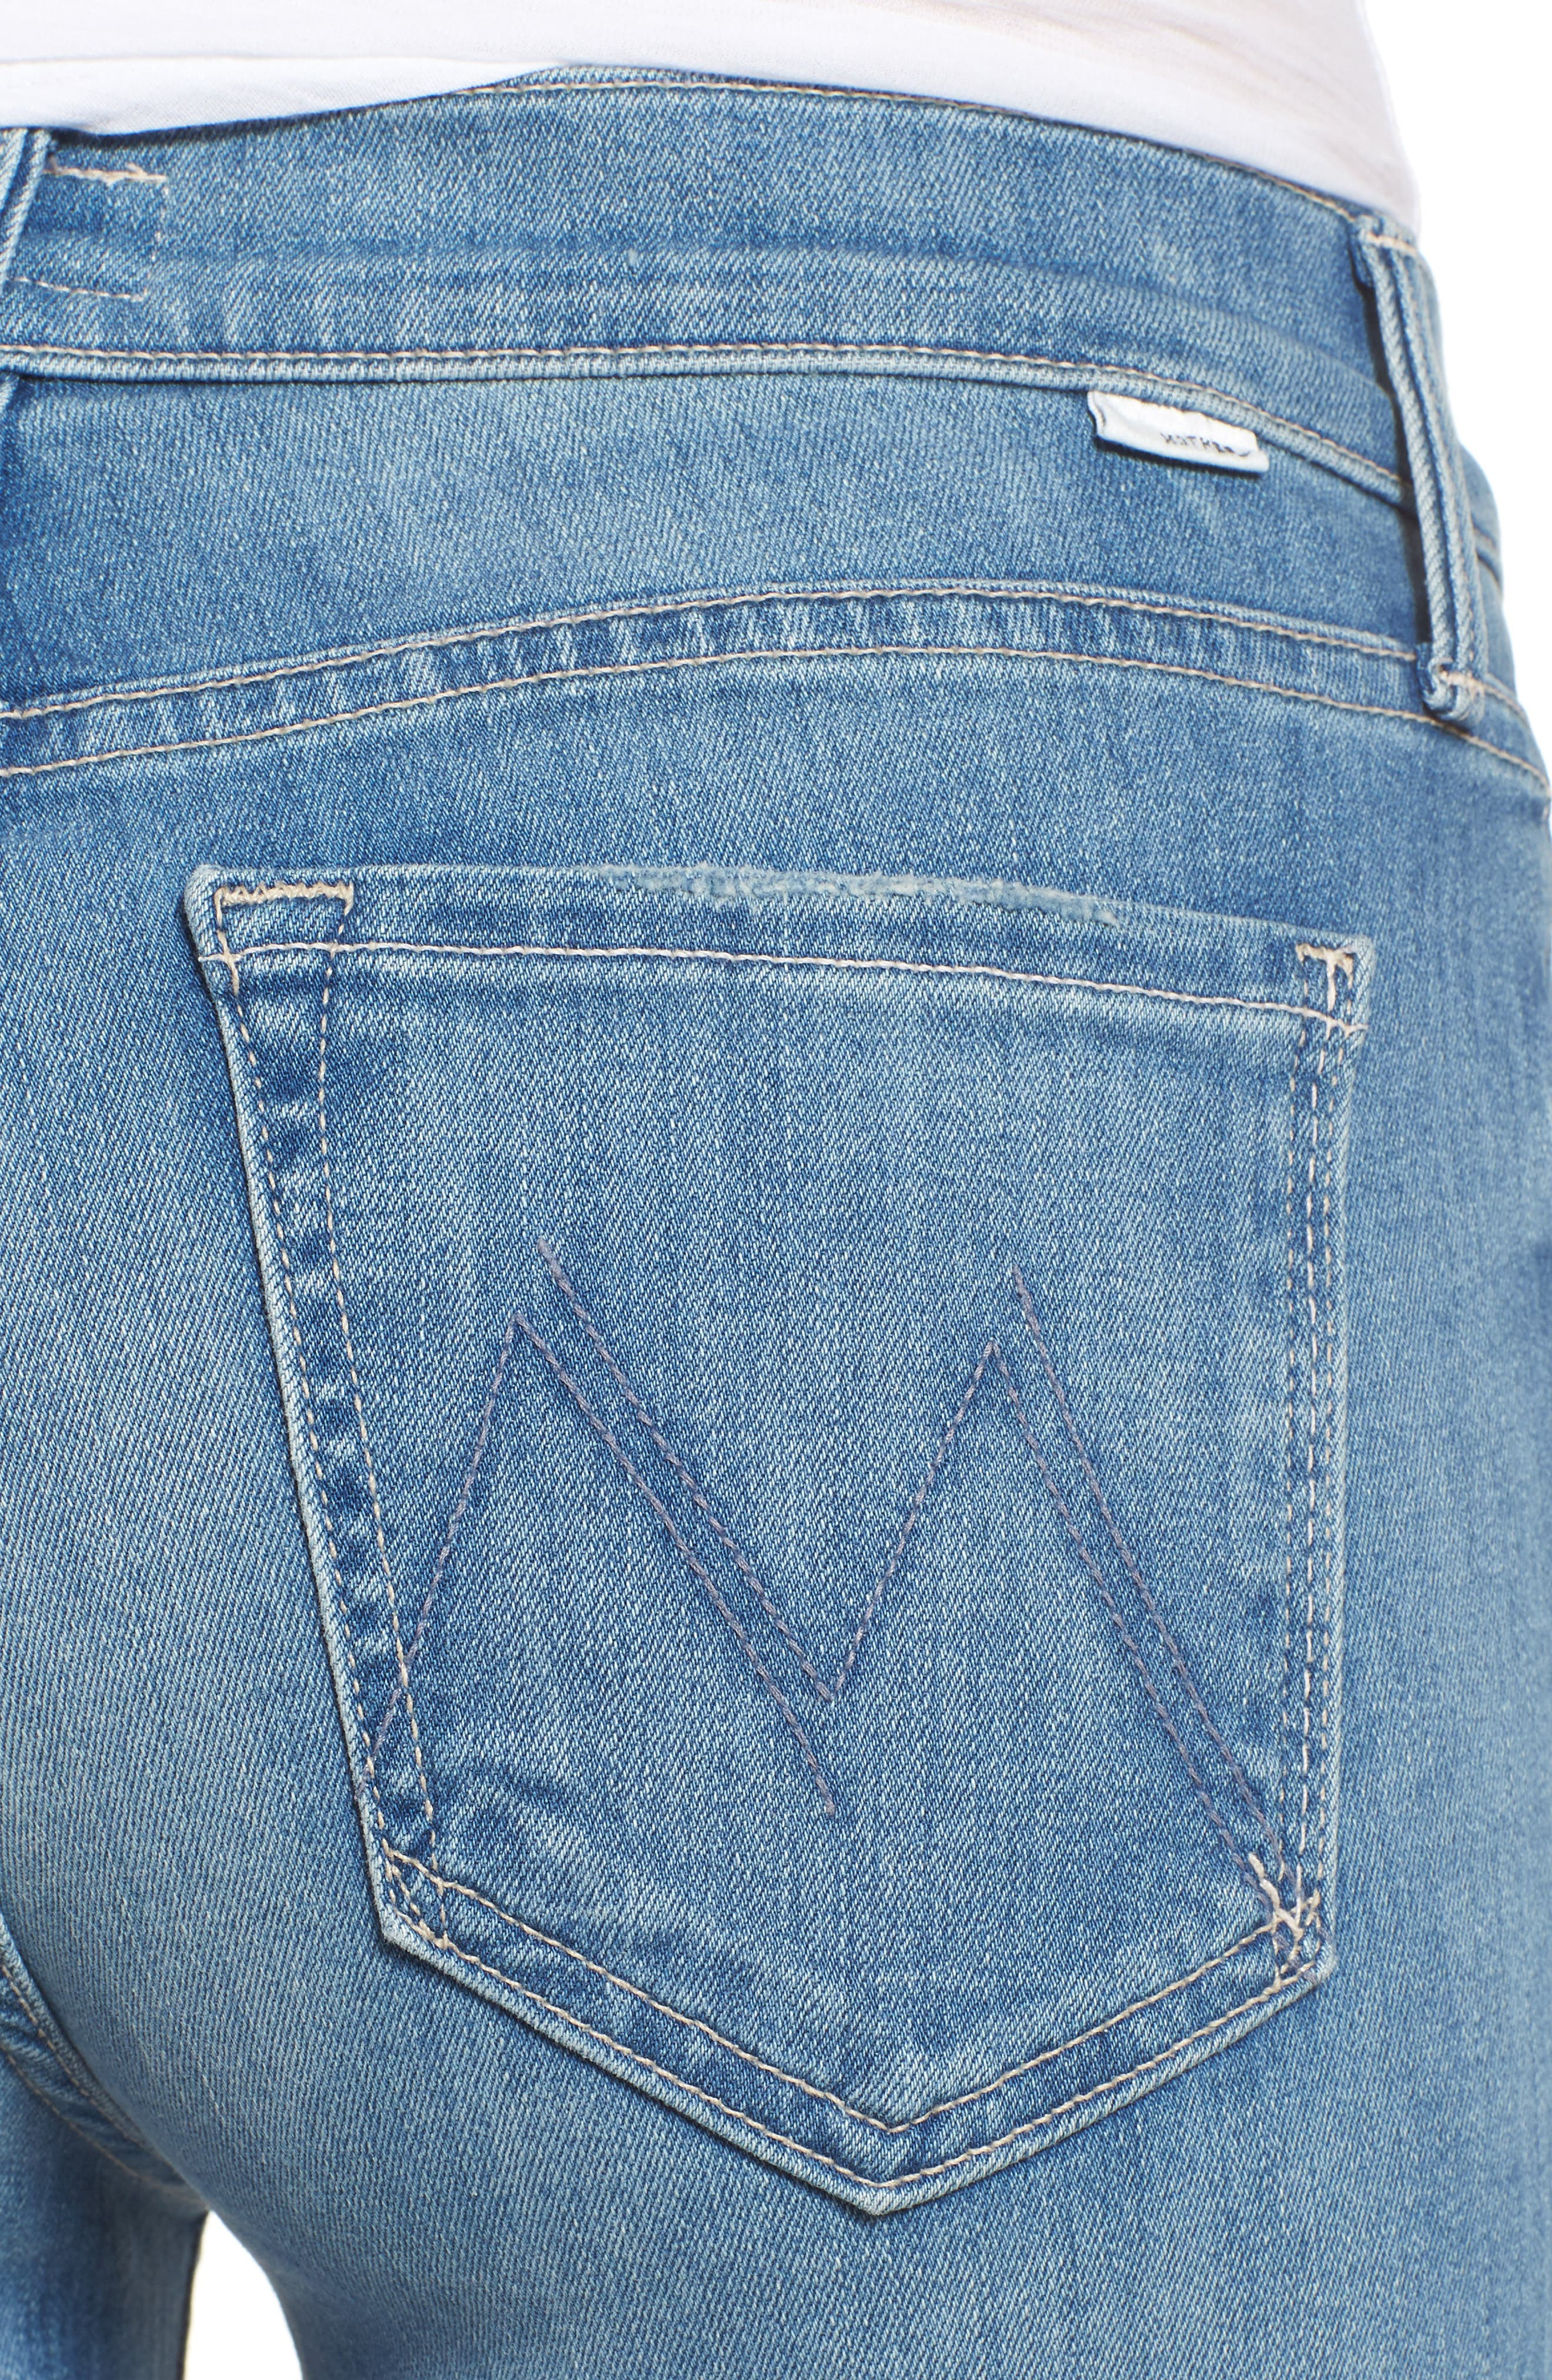 MOTHER,                             The Rascal Ankle Snippet Straight Leg Jeans,                             Alternate thumbnail 4, color,                             400